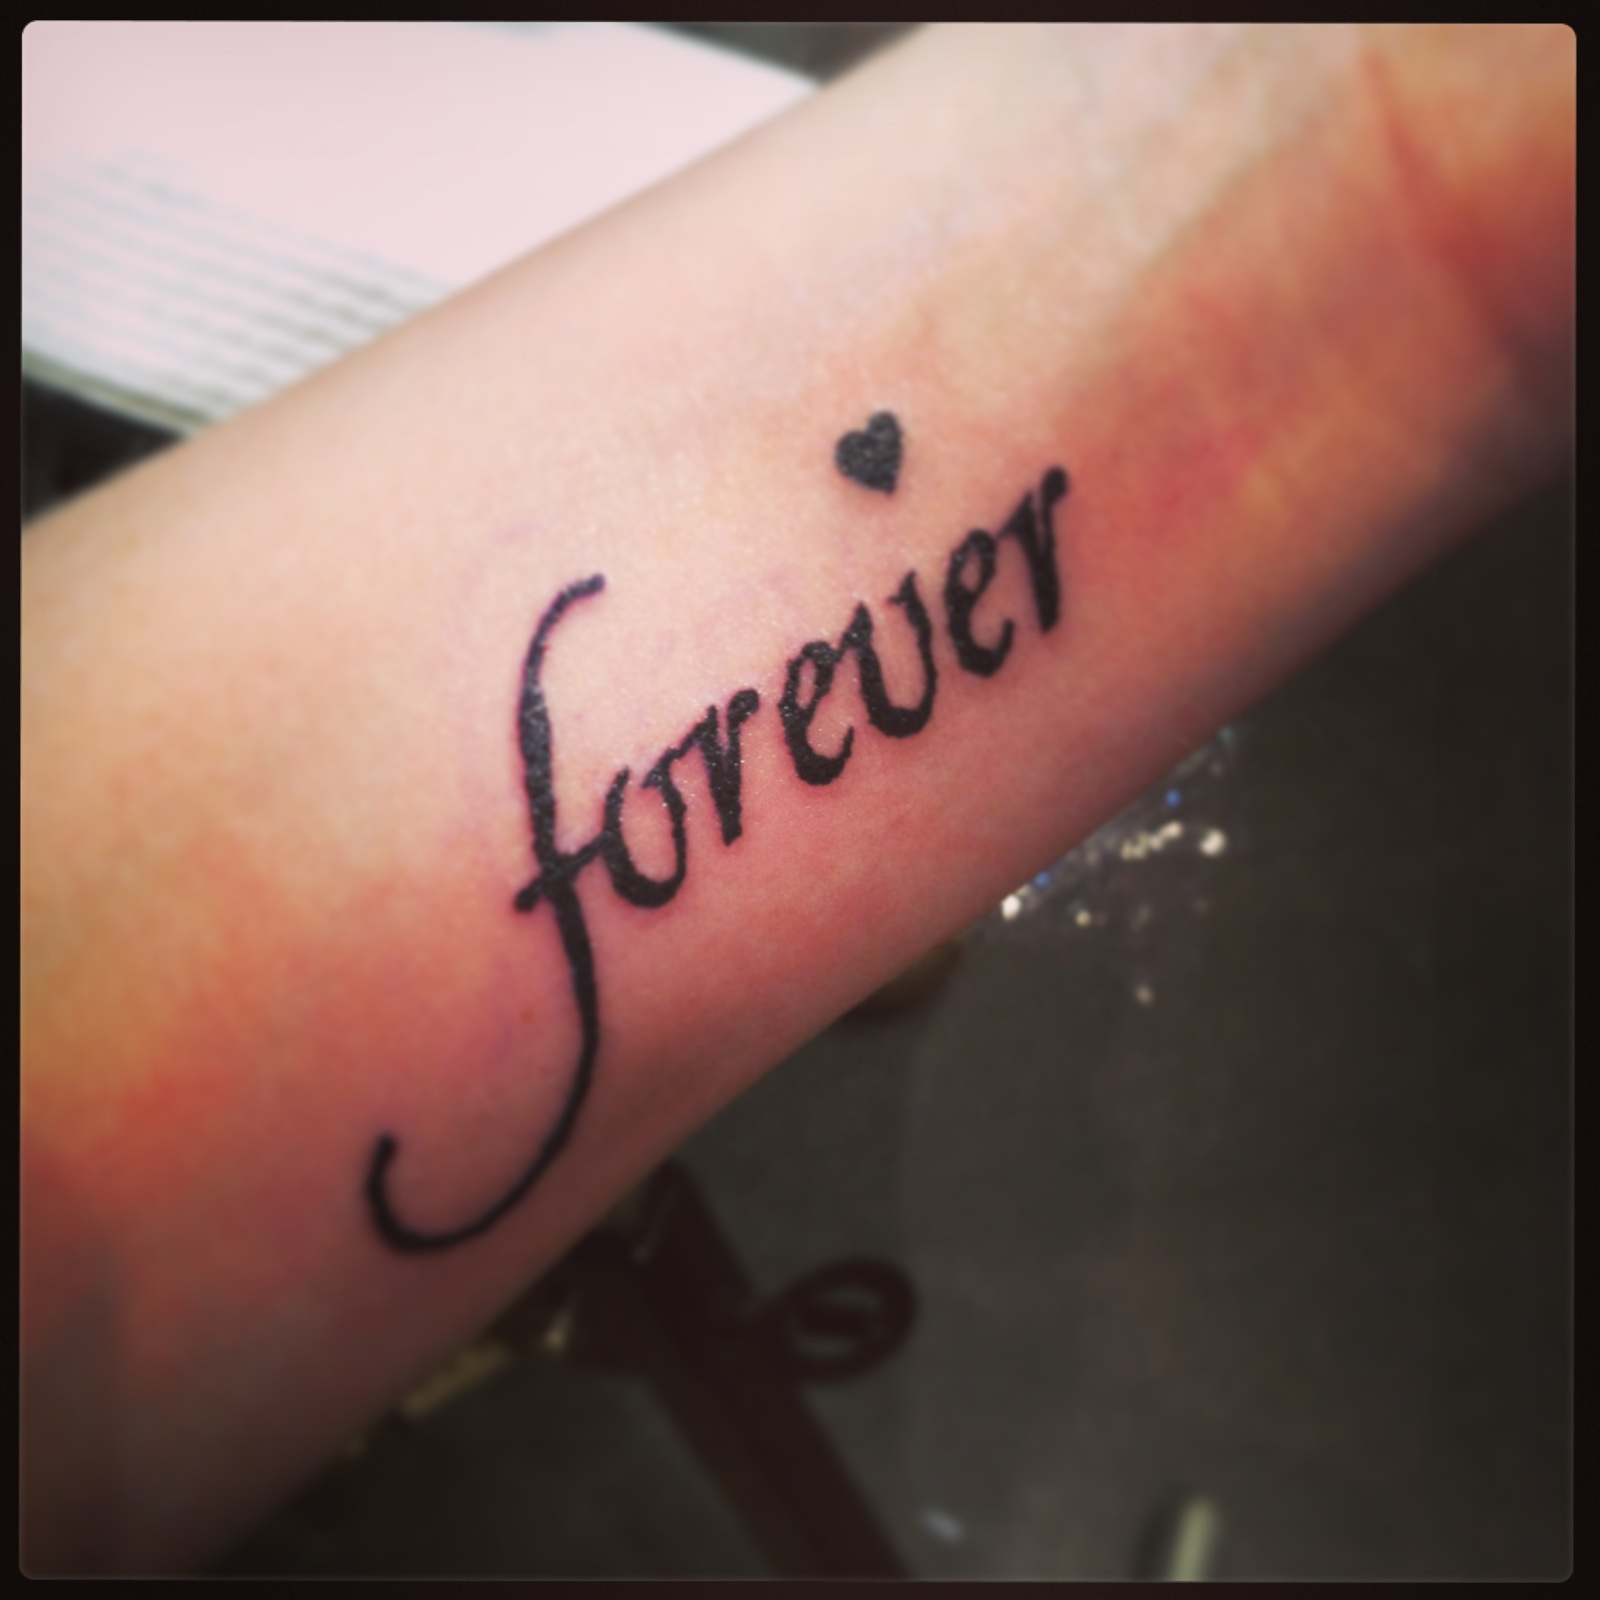 Tattoos Live Forever Pictures To Pin On Pinterest  Tattooskid